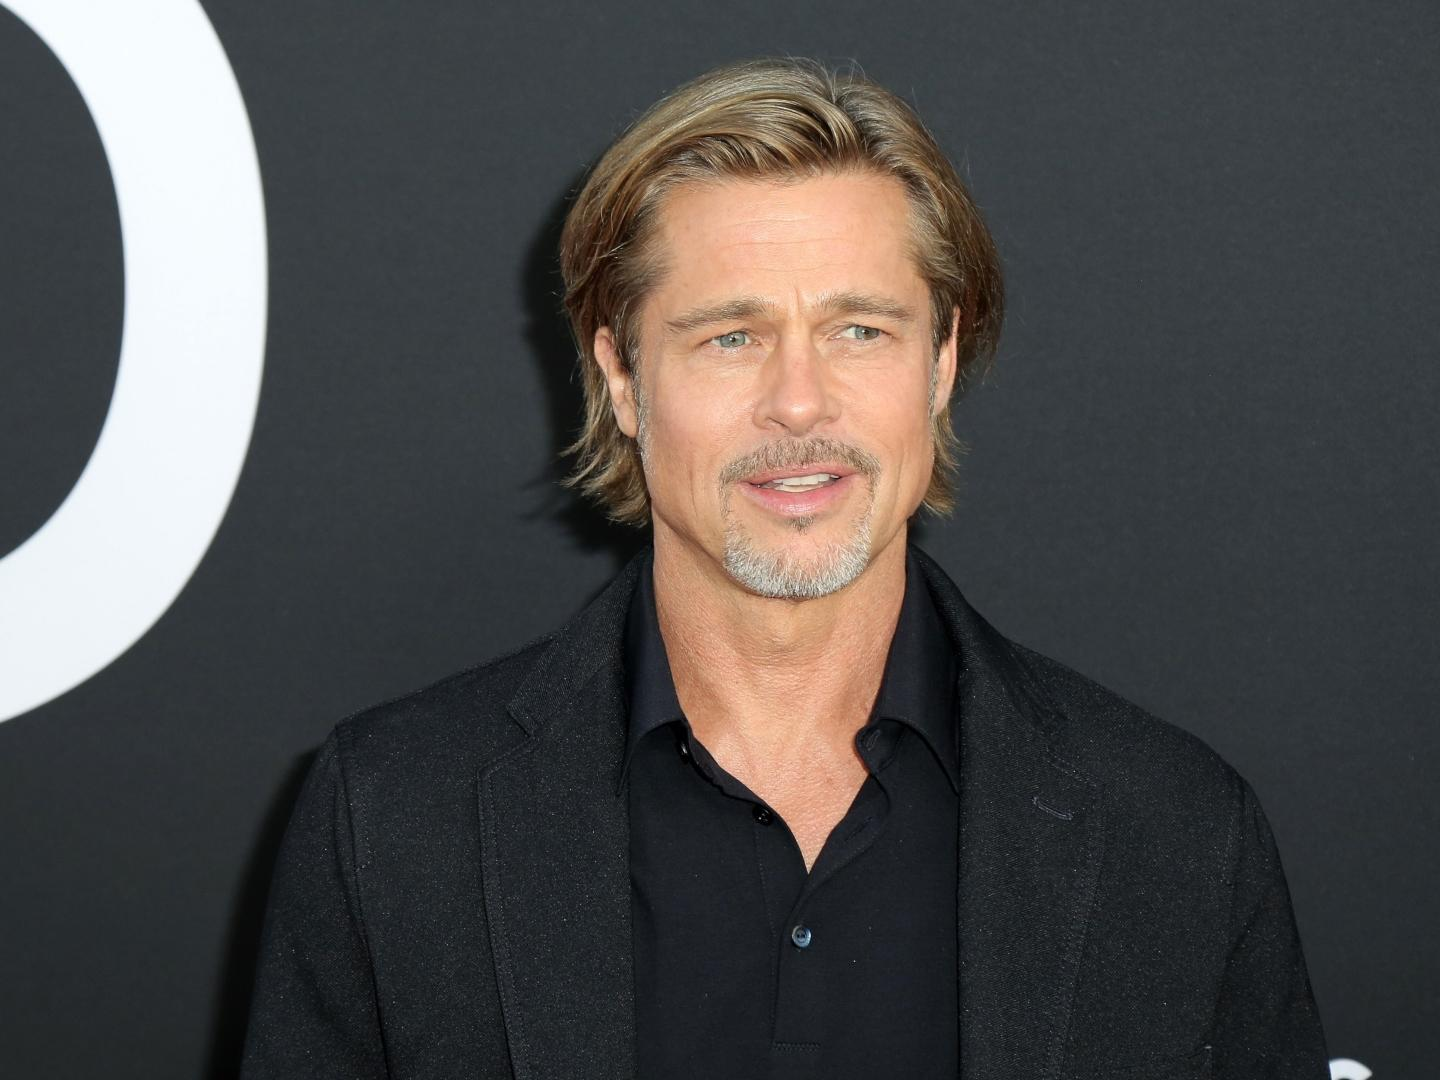 Did Brad Pitt S Girlfriend Nicole Poturalski Just Shade Angelina Jolie With A Pic From Her Wedding Site